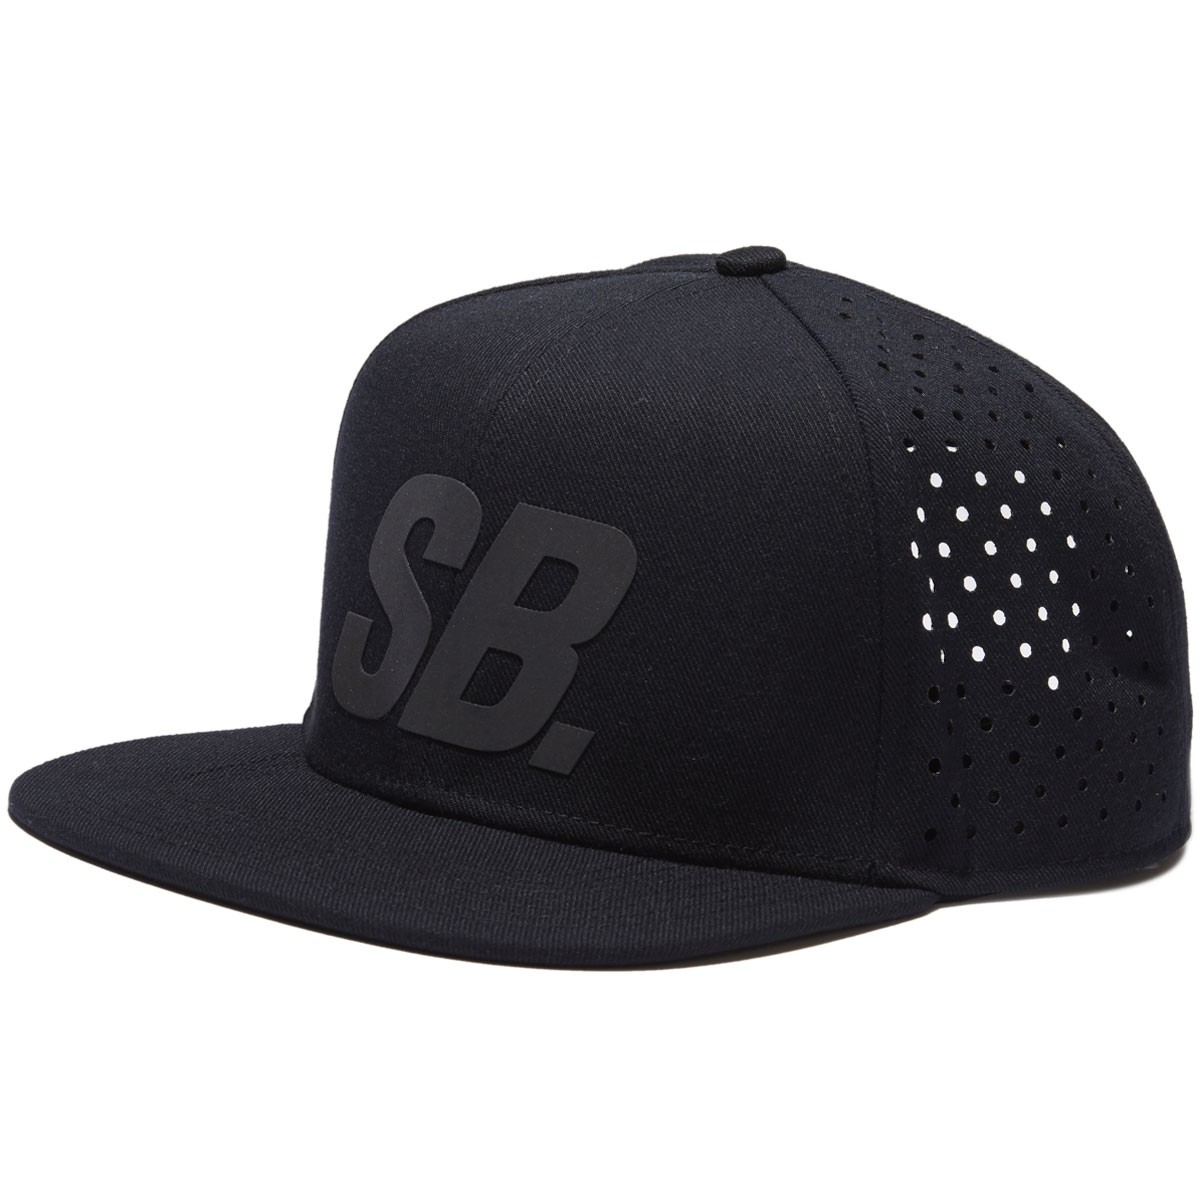 195244b4231 Nike SB Black Reflect Pro Trucker Hat - Black Reflect Black